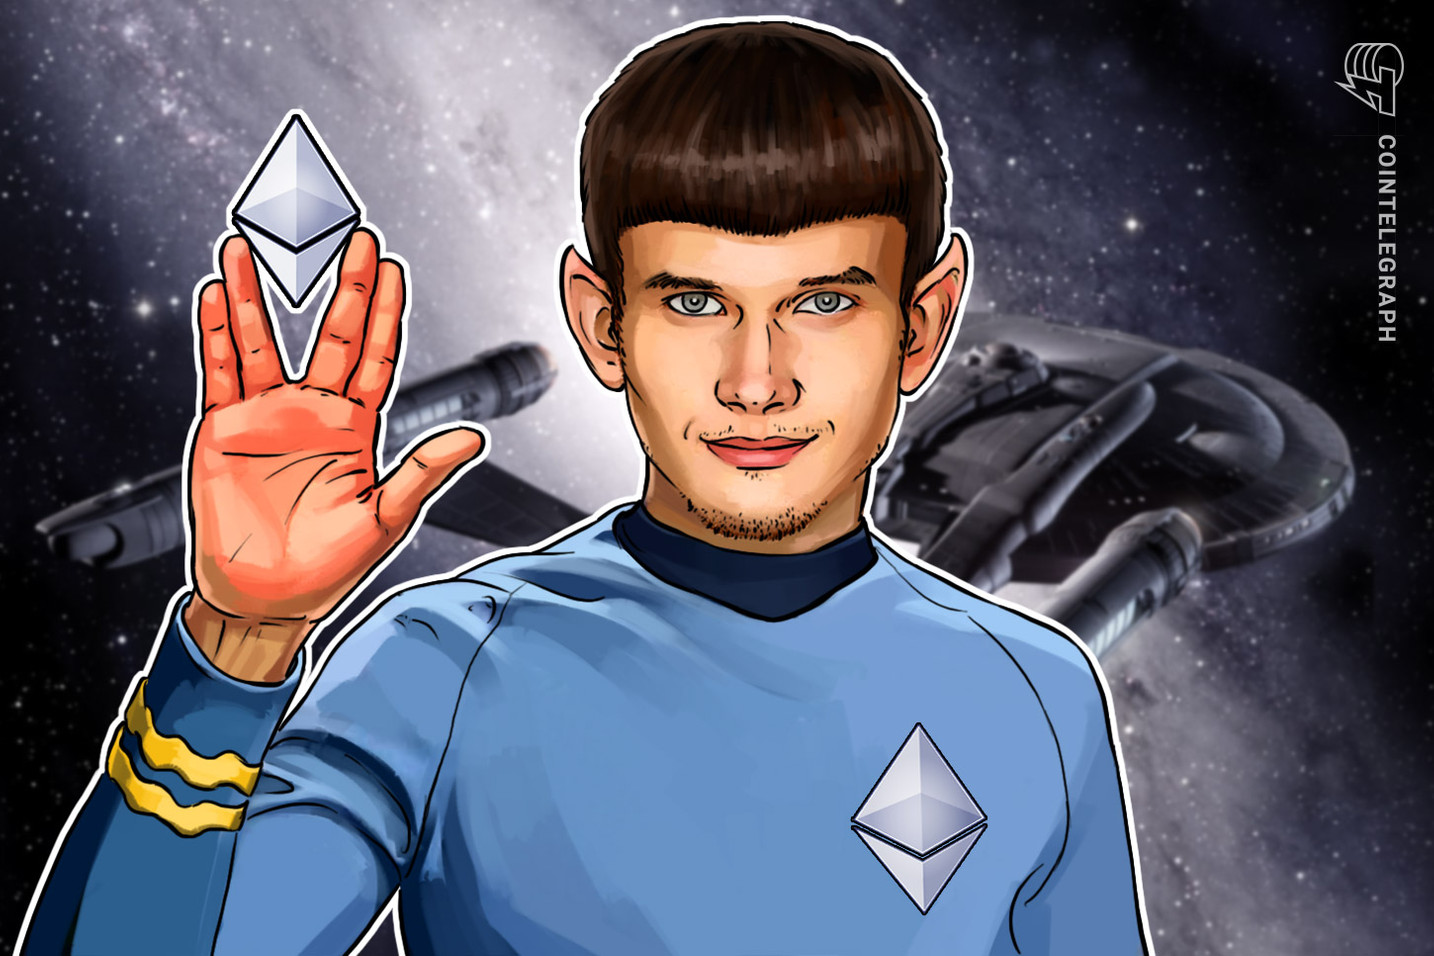 Set Phasers to HODL: Star Trek's William Shatner Tweets in Support of Vitalik Buterin